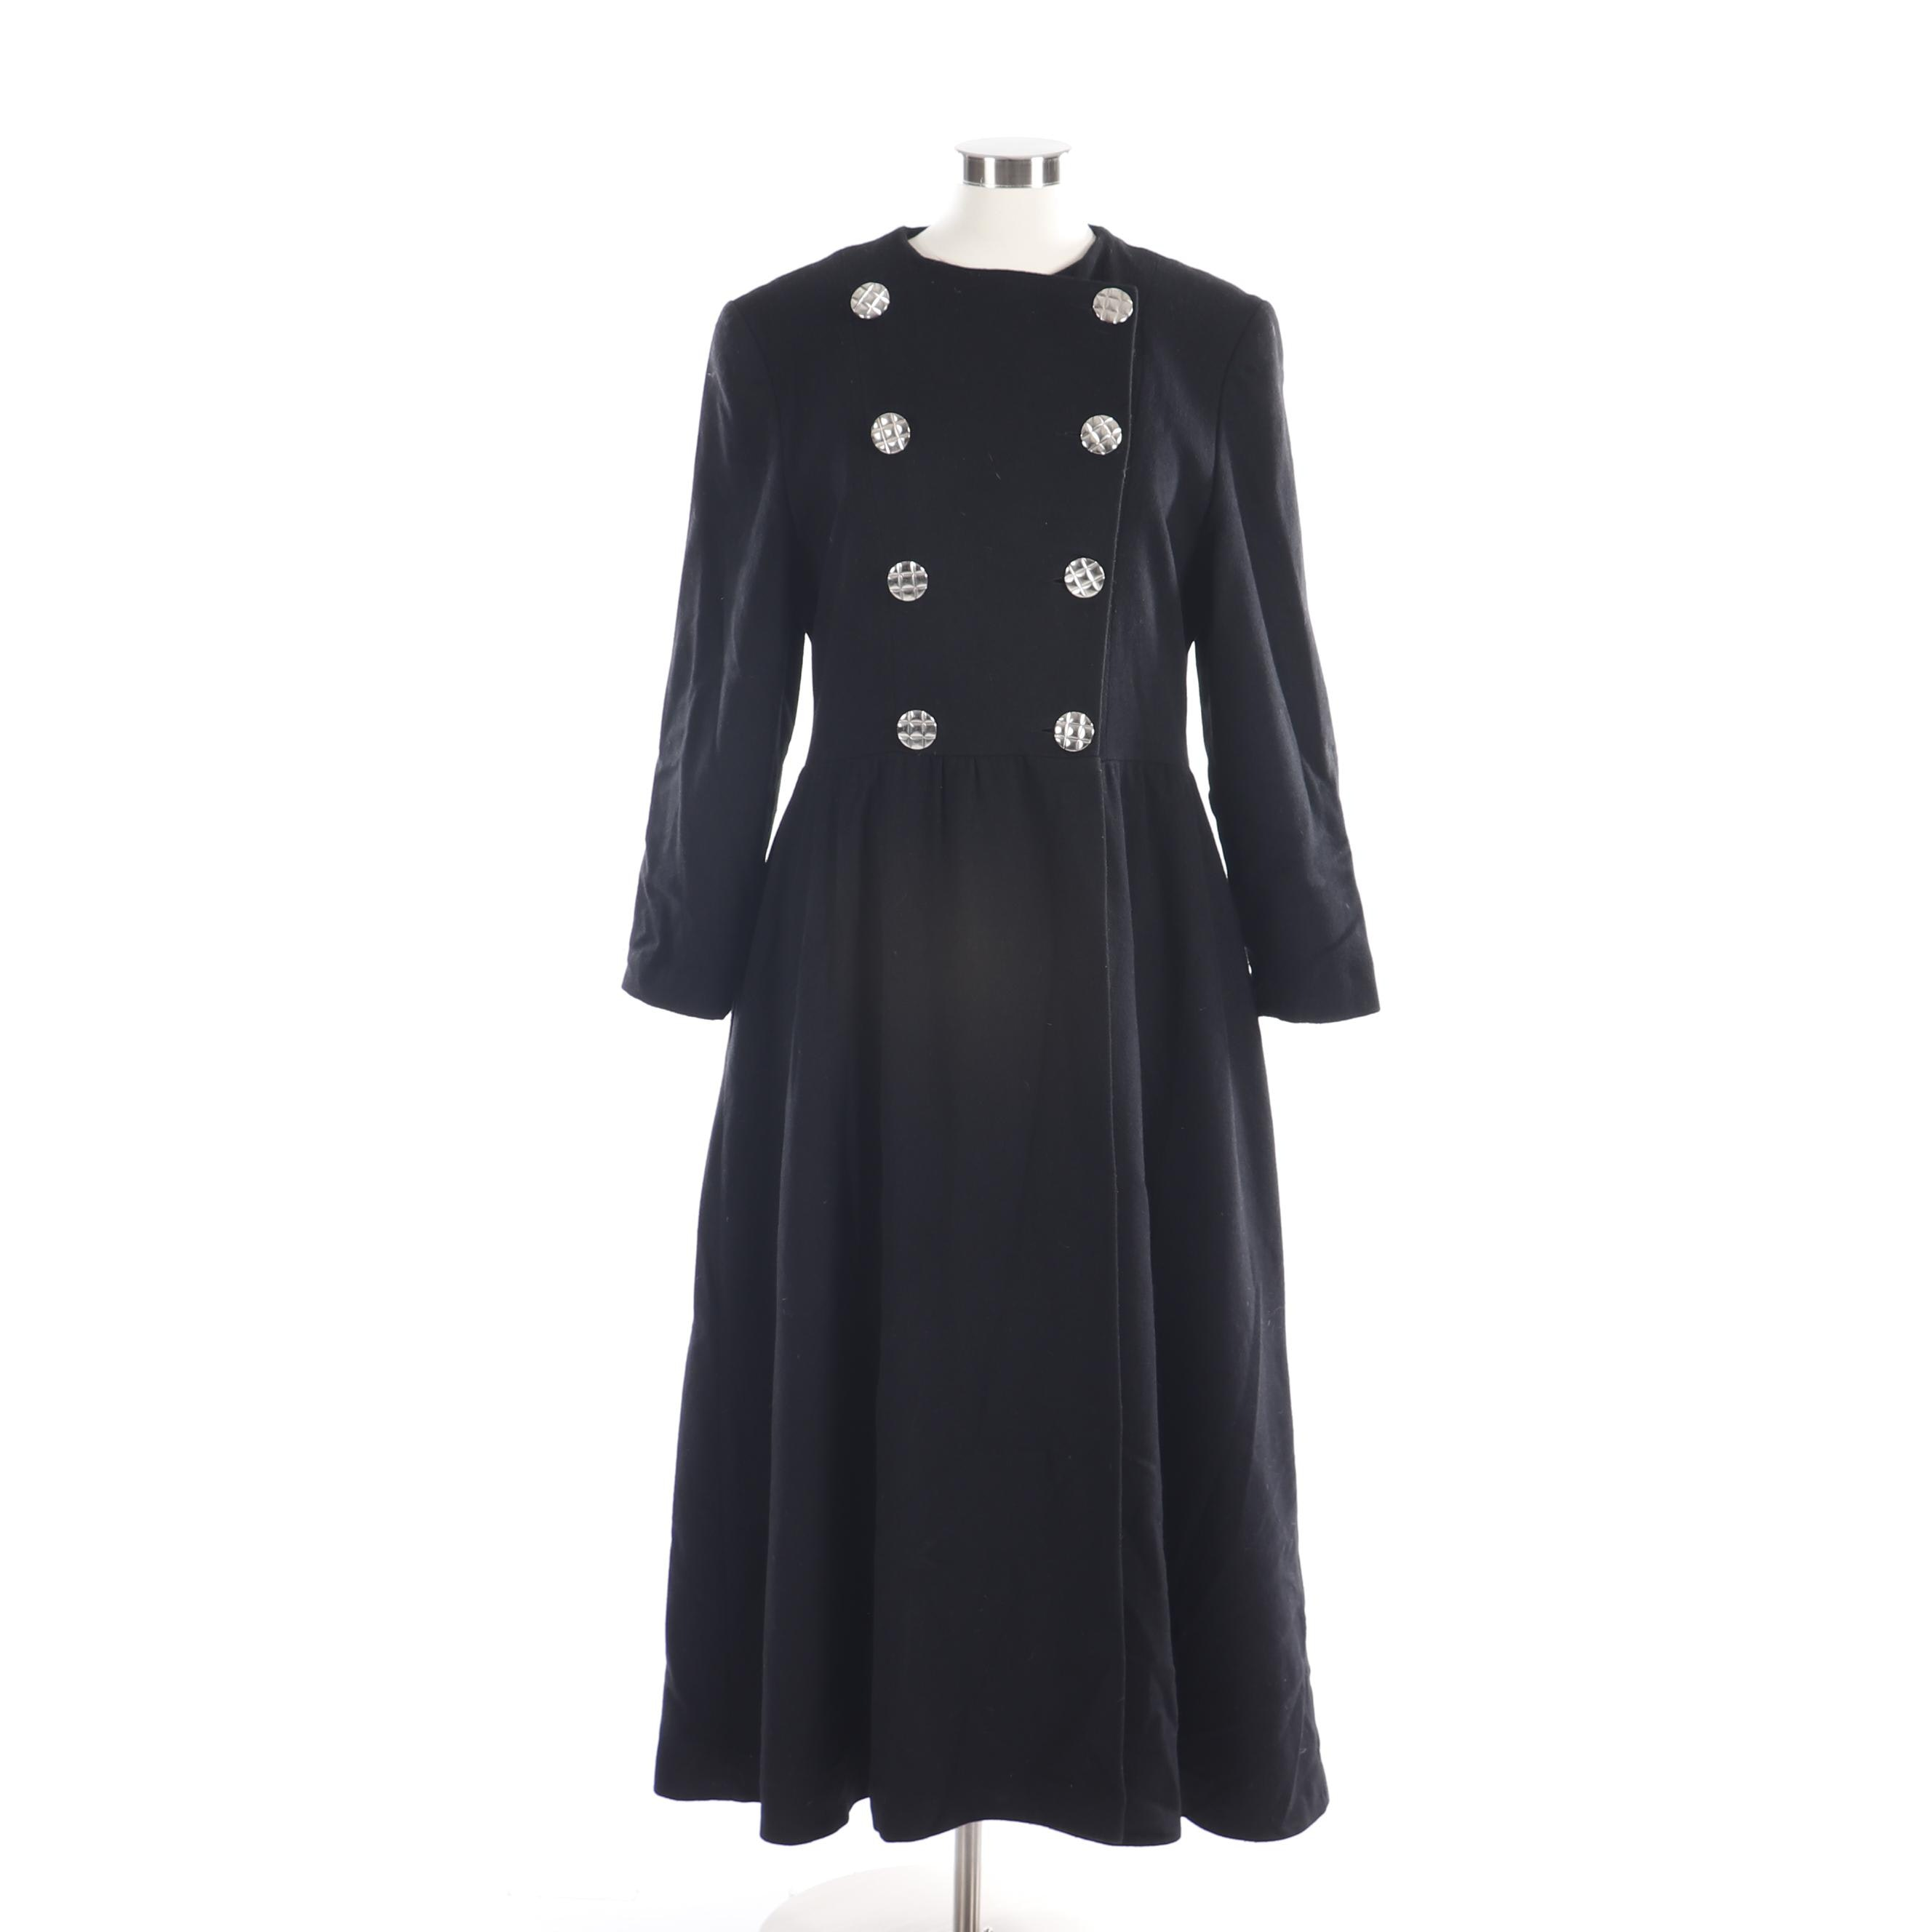 Marimekko Black Wool Double-Breasted Princess Coat, Made in Finland